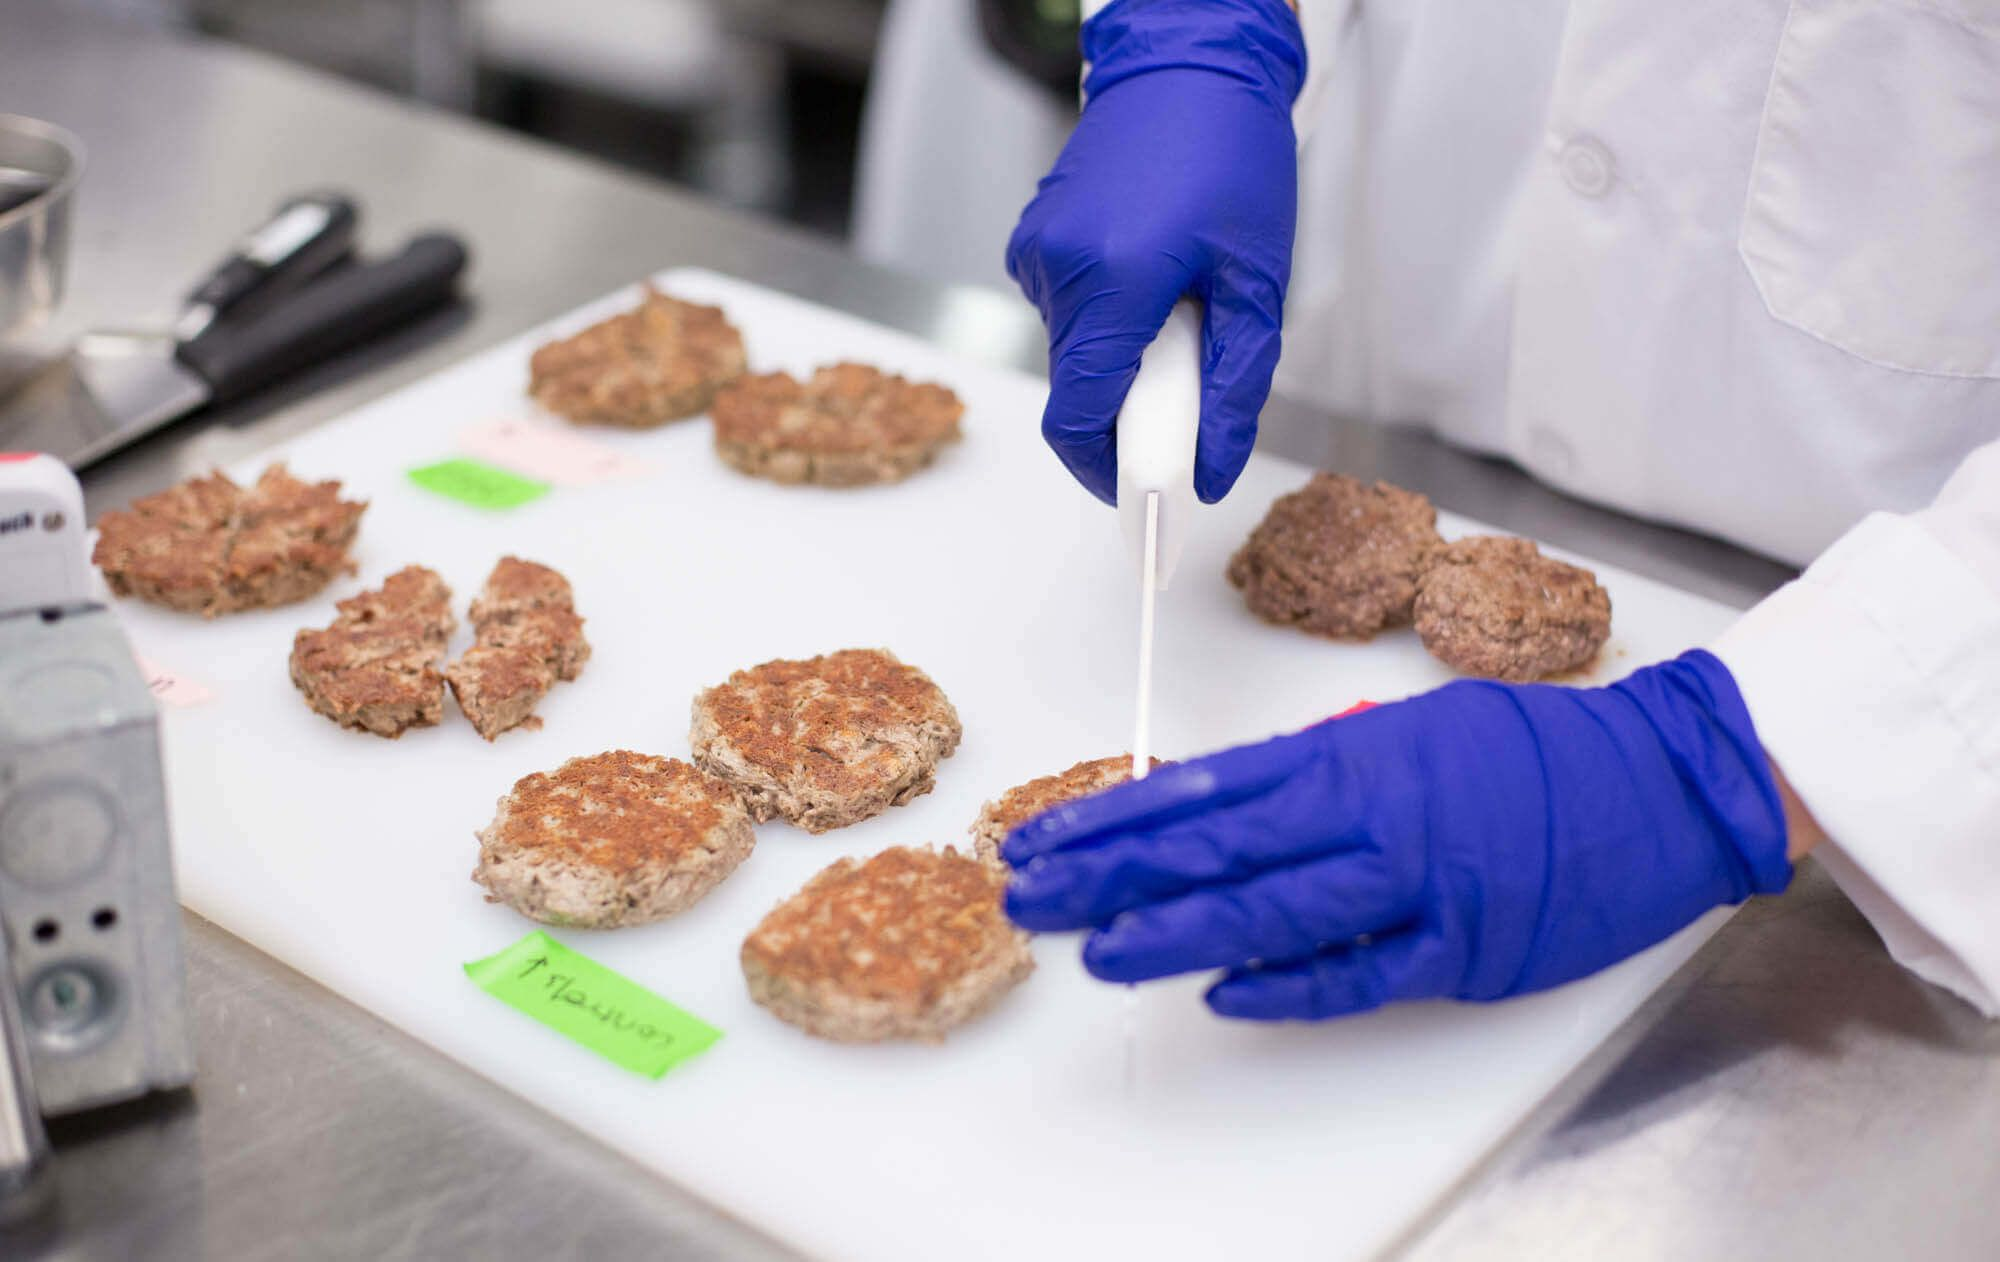 Scientists at Impossible Foods, a meatless burger startup backed by Bill Gates, experiment with different ingredients in their patty.